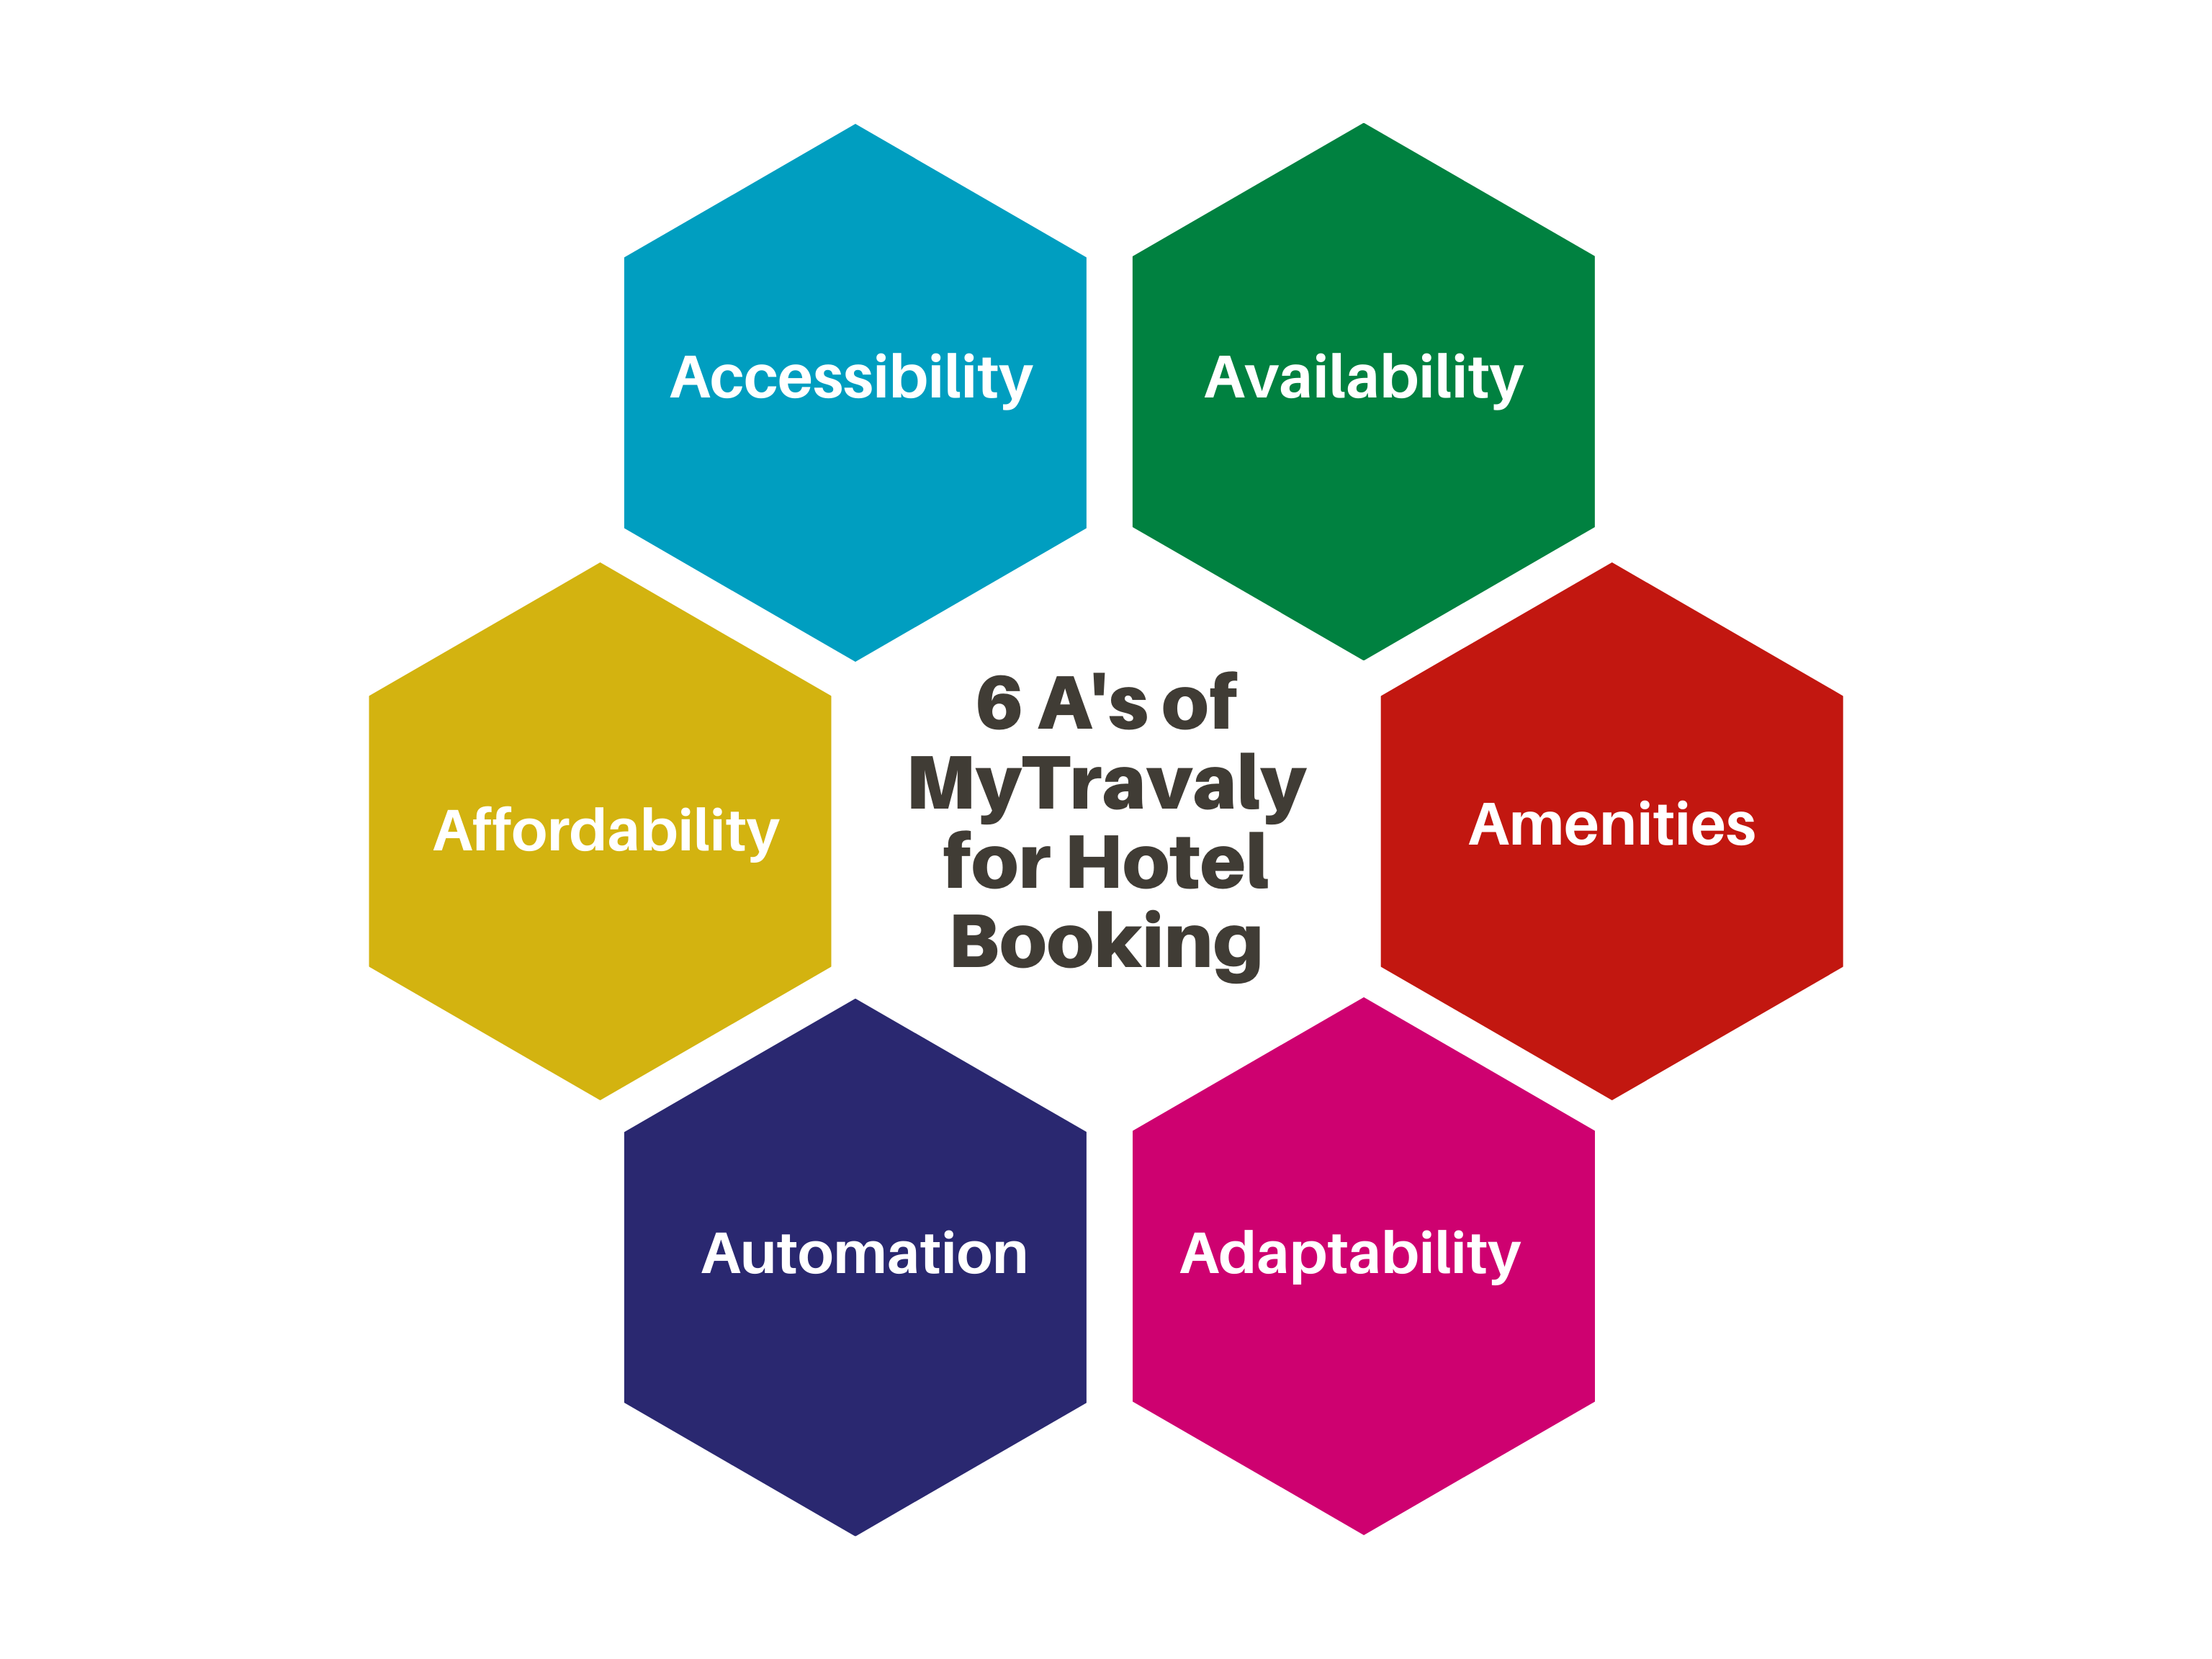 6 A's of MyTravaly for Hotel Booking